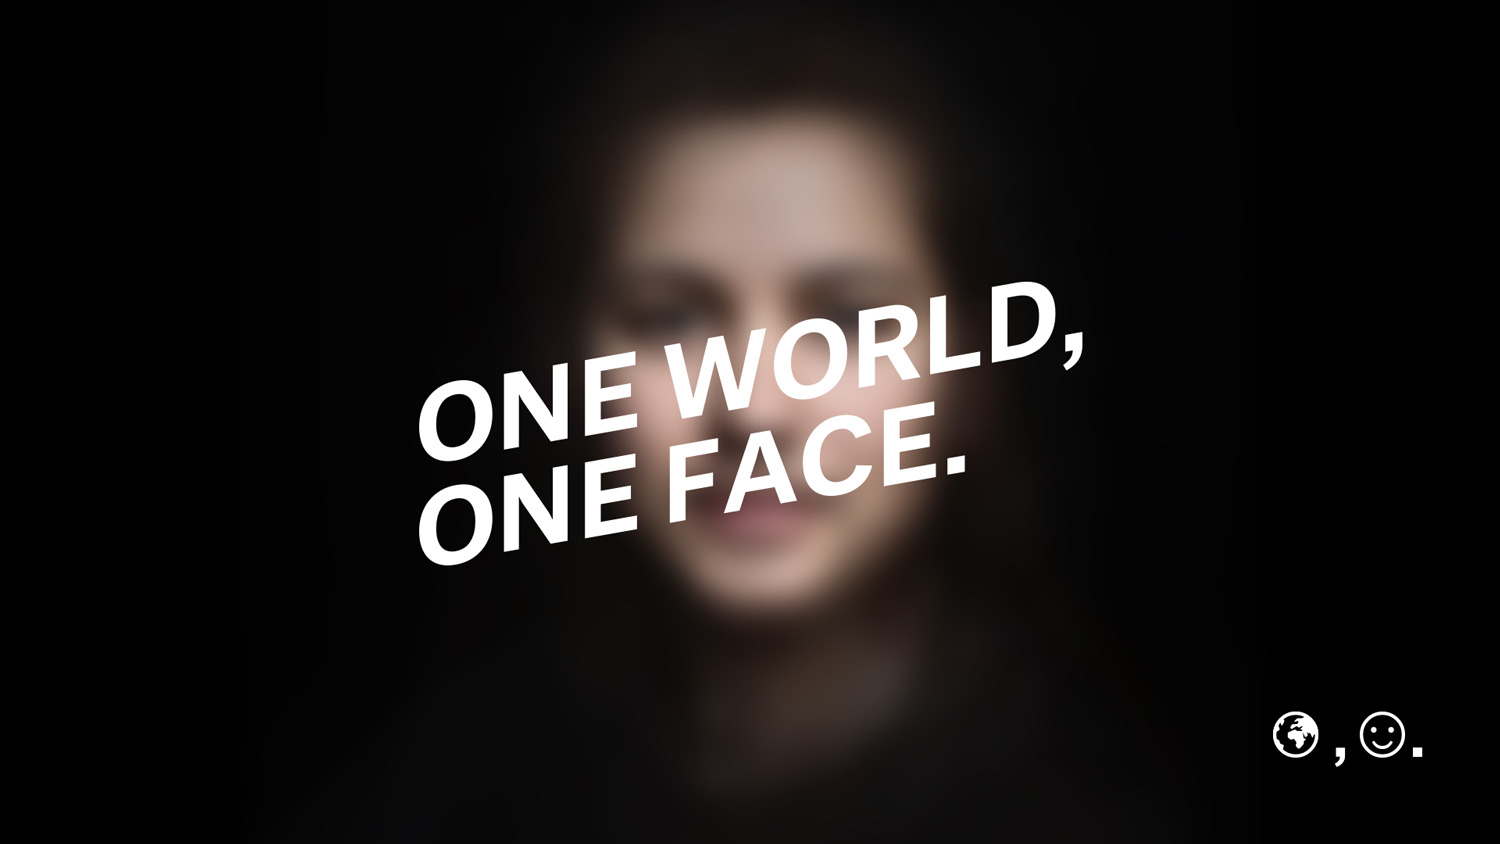 Creativity and Mobile Performance: One World, One Face by Adoratorio